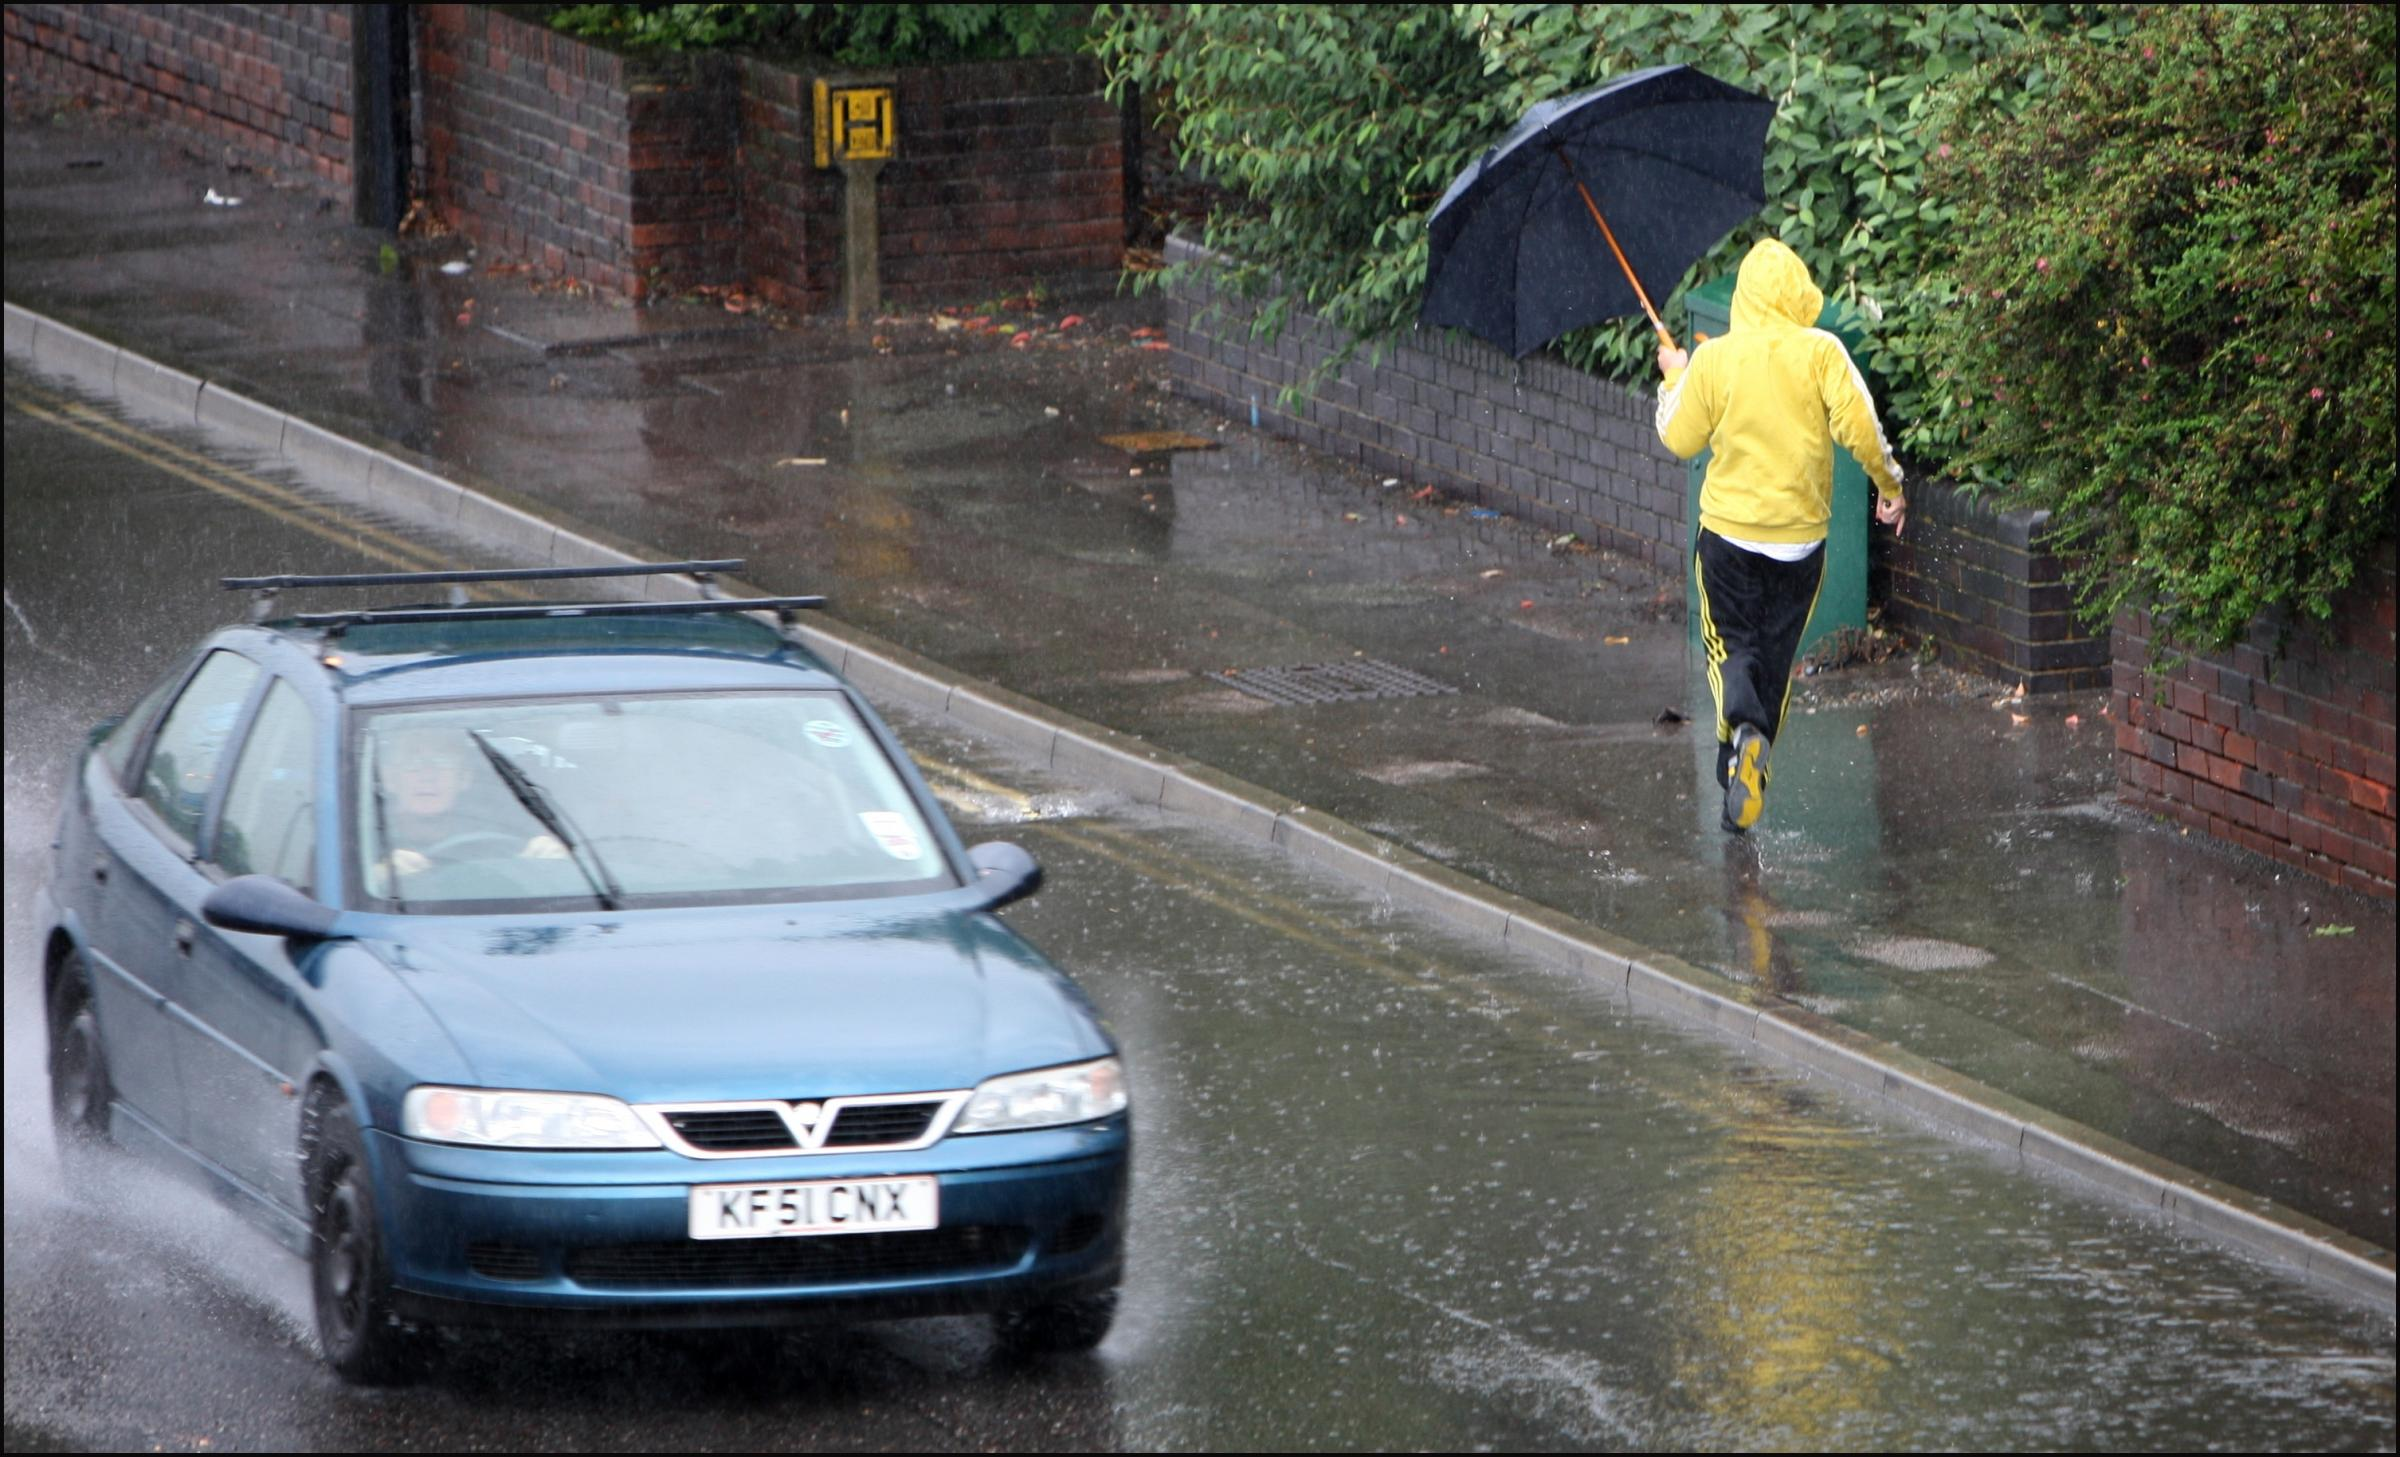 A pedestrian walks through flooded Millbrook Road West in Southampton following heavy rain (stock photo)